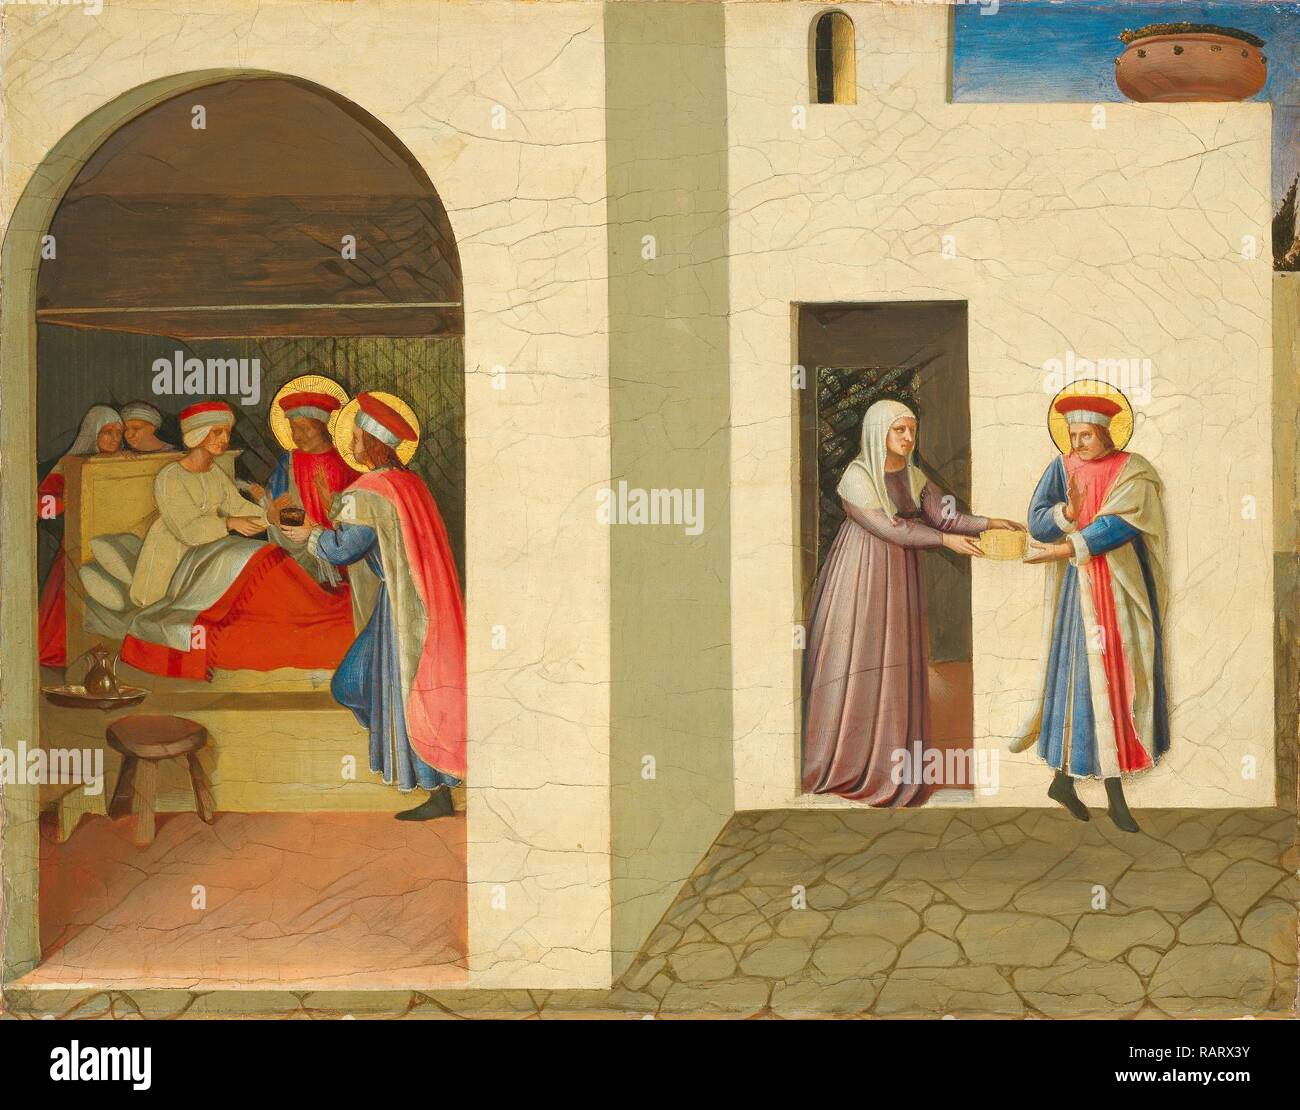 Fra Angelico, The Healing of Palladia by Saint Cosmas and Saint Damian, Italian, c. 1395-1455, c. 1438-1440, tempera reimagined - Stock Image